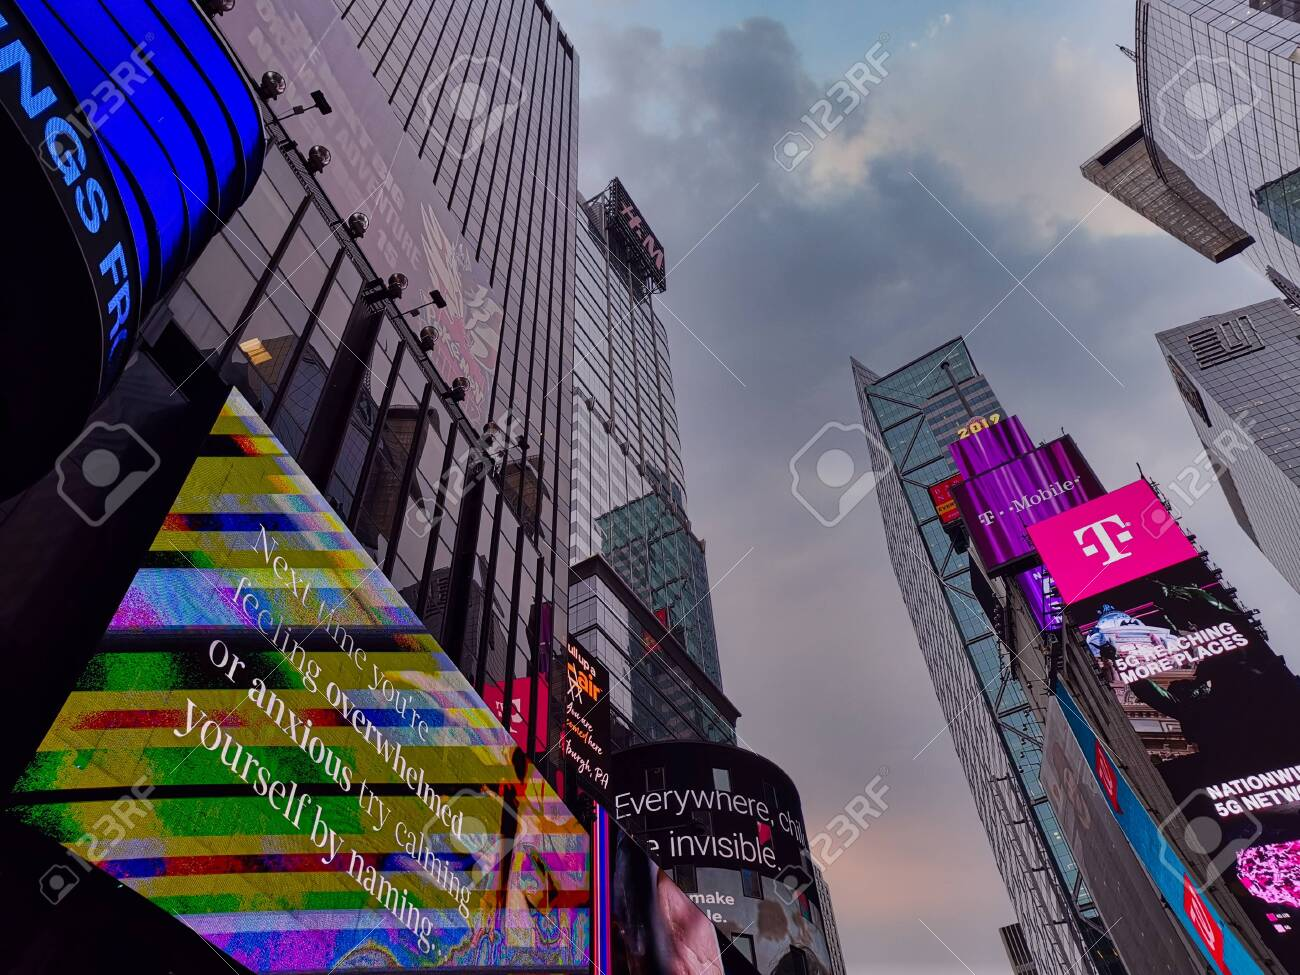 Times Square New York city USA, one of the world's most visited tourist attractions showing skyscrapers and bright illuminated billboards - 152821464